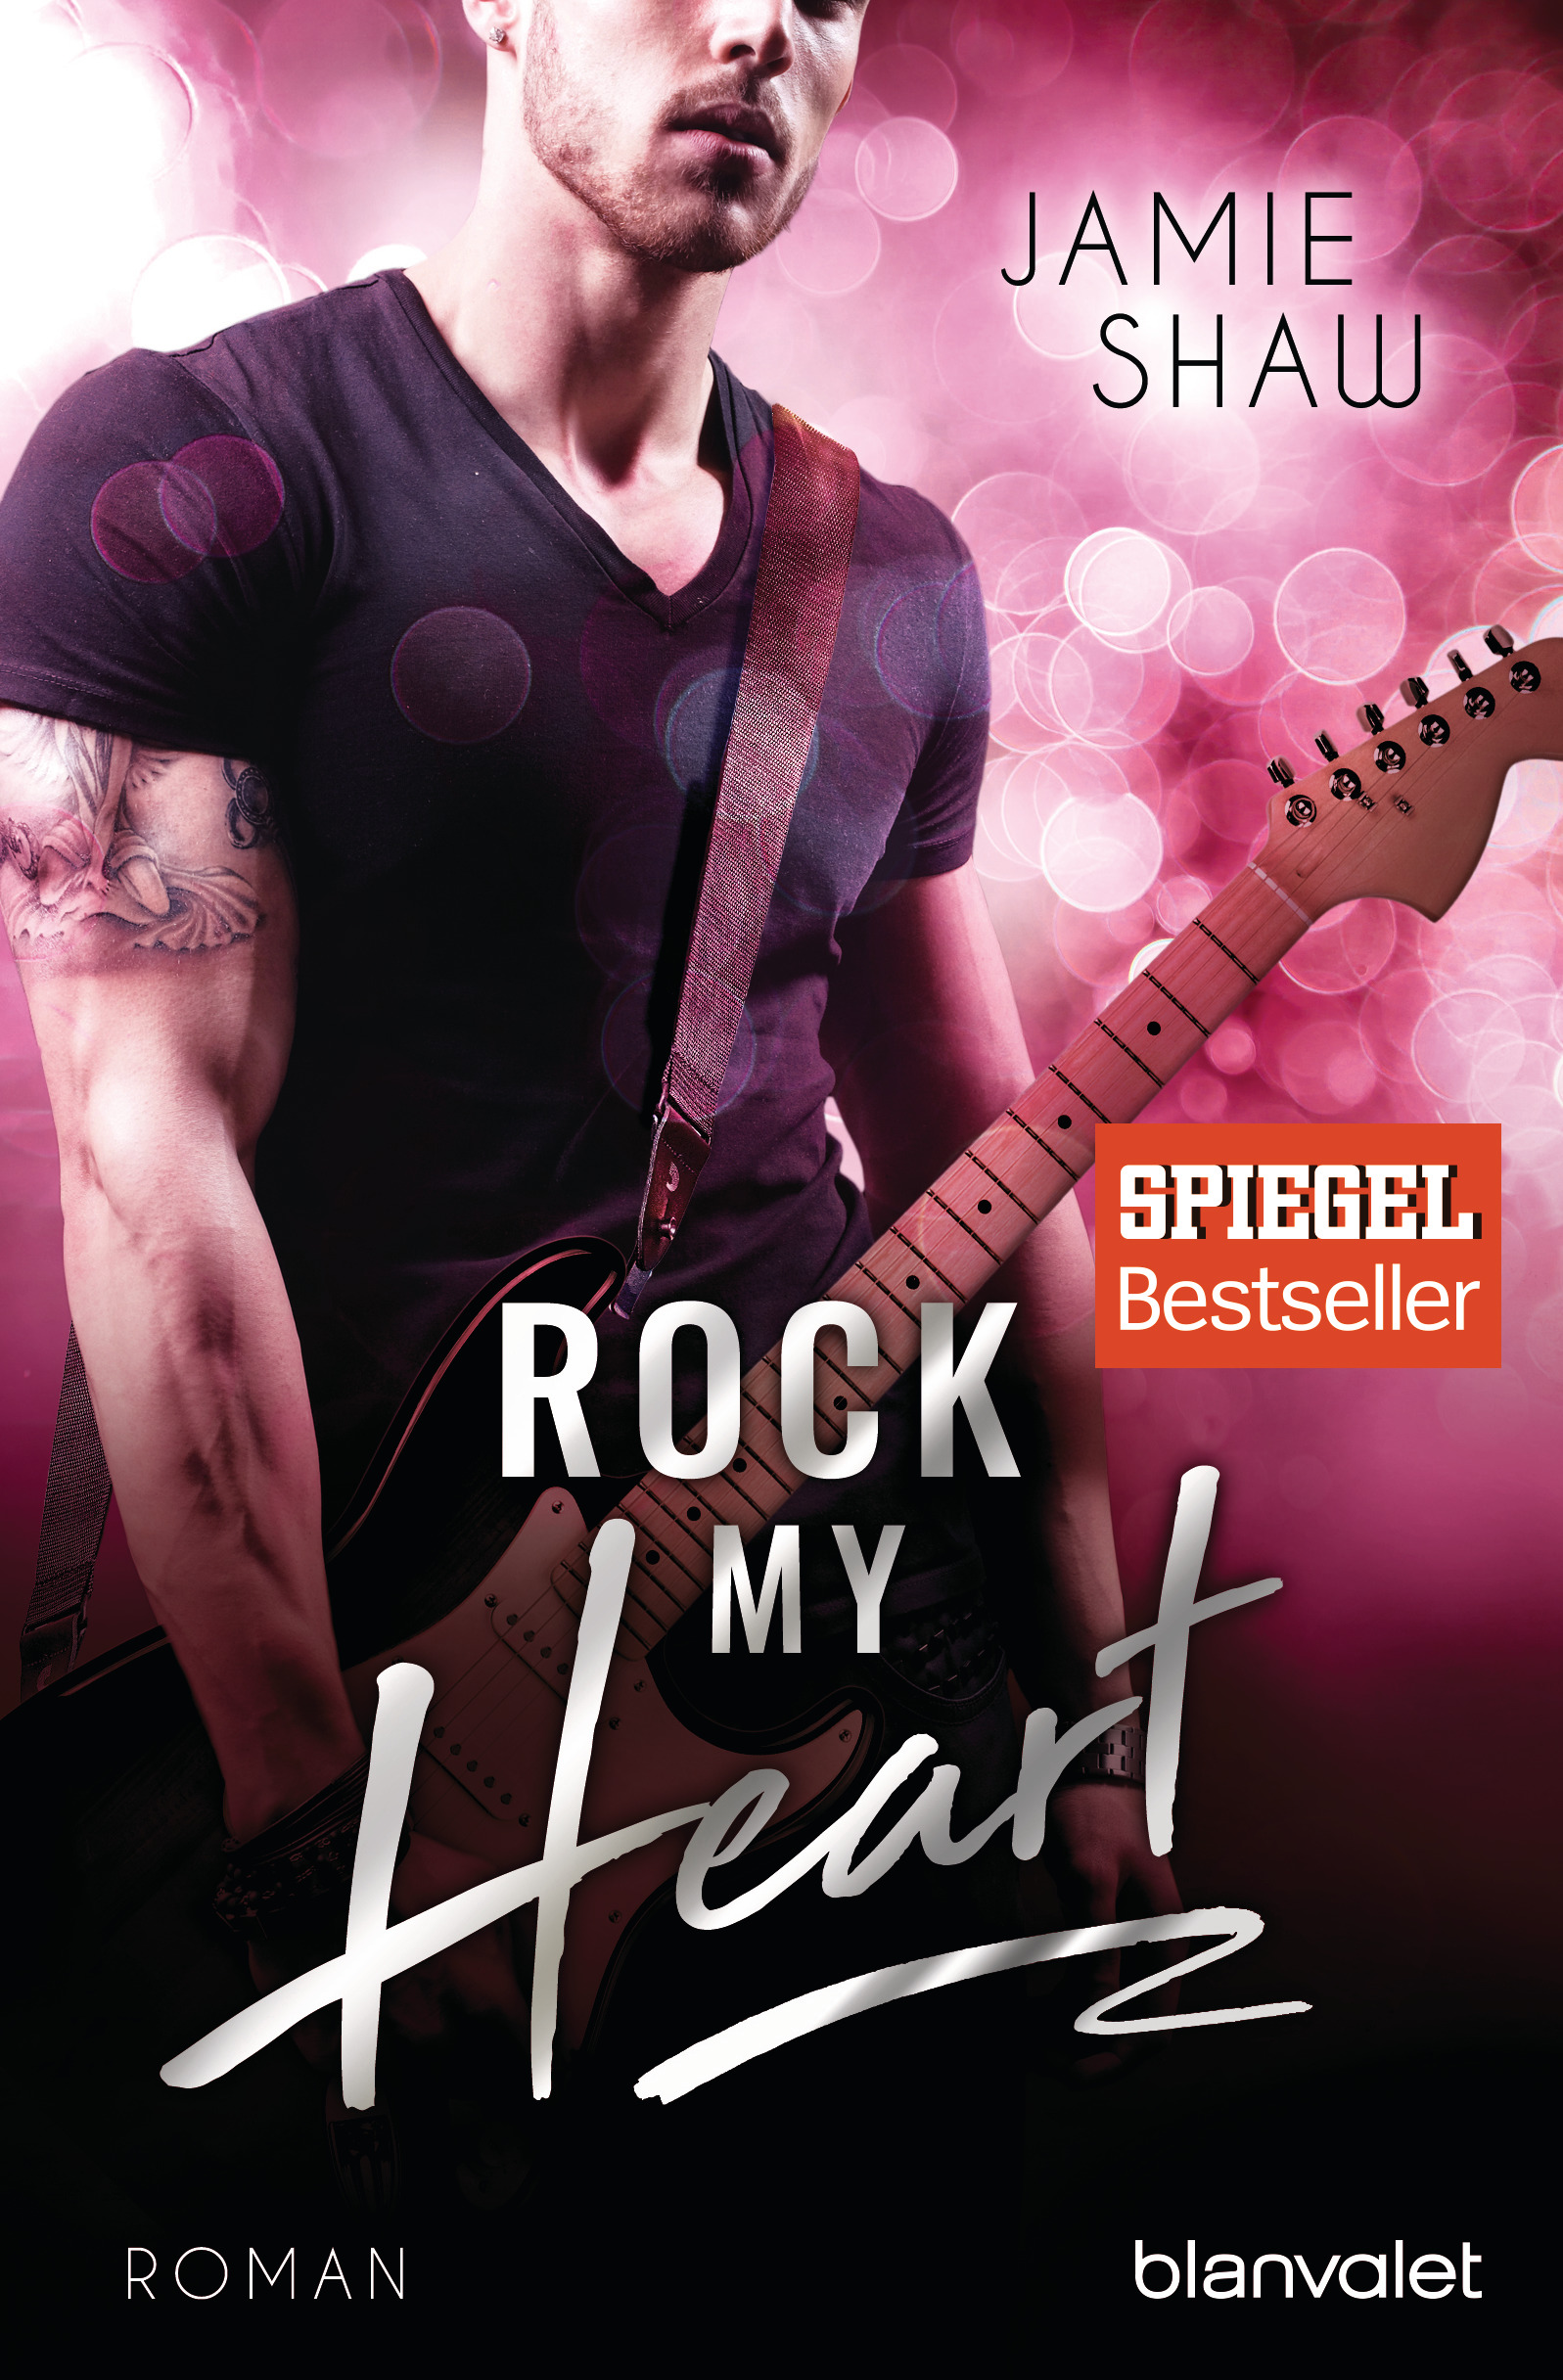 https://www.weltbild.at/artikel/buch/rock-my-heart_21999075-1?wea=59529658